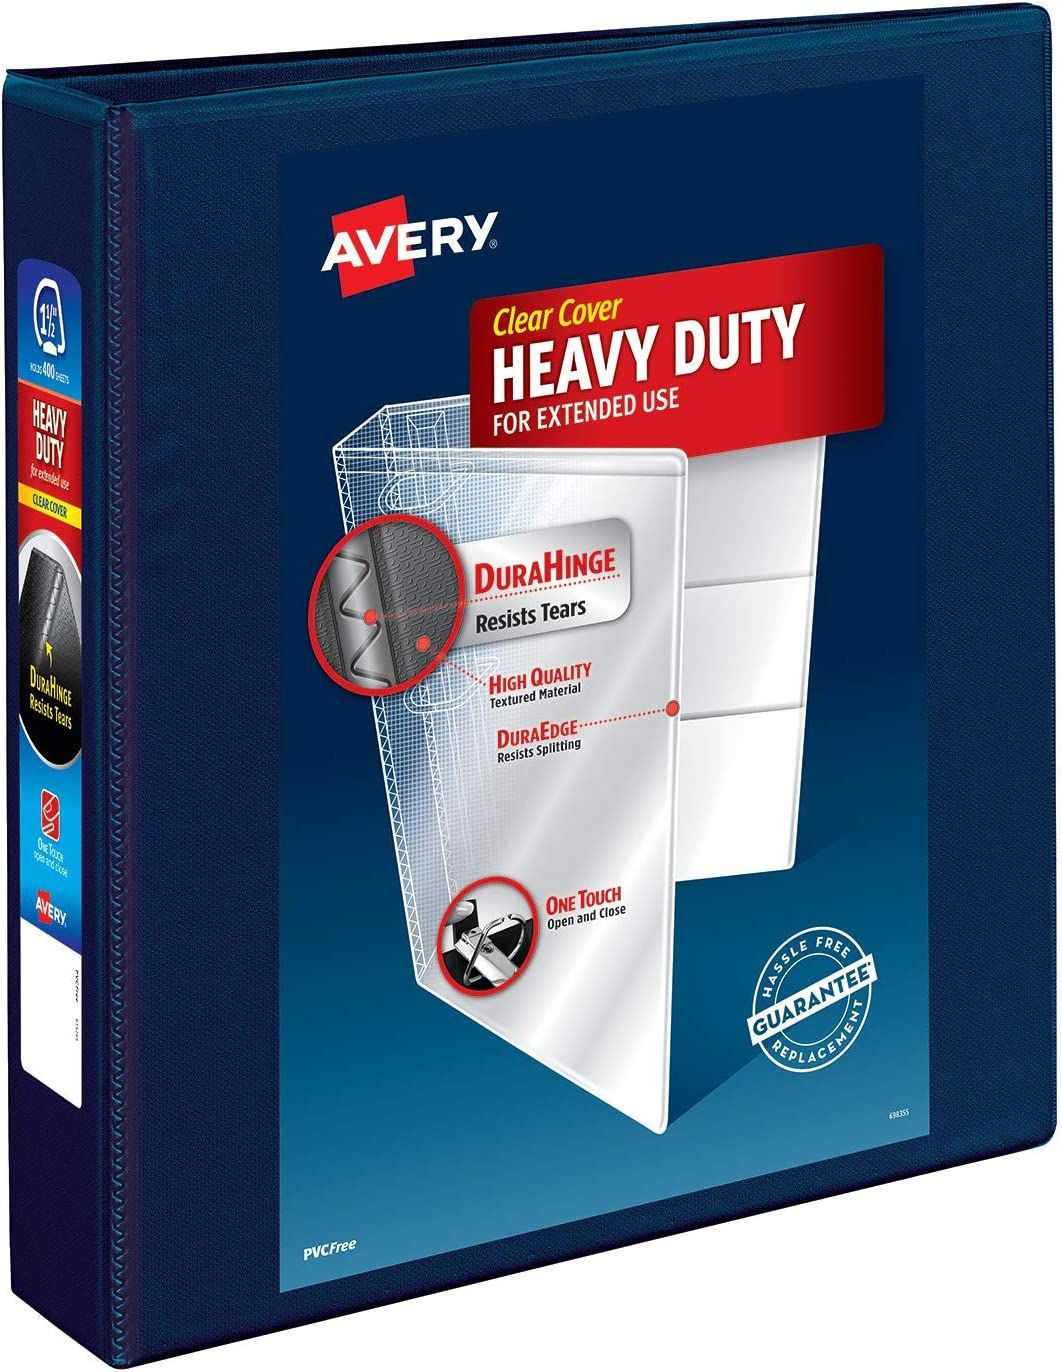 """Avery Heavy Duty View 3 Ring Binder, 1.5"""" One Touch EZD Ring, Holds 8.5"""" x 11"""" Paper, 1 Navy Blue Binder (79805) : Office Products"""